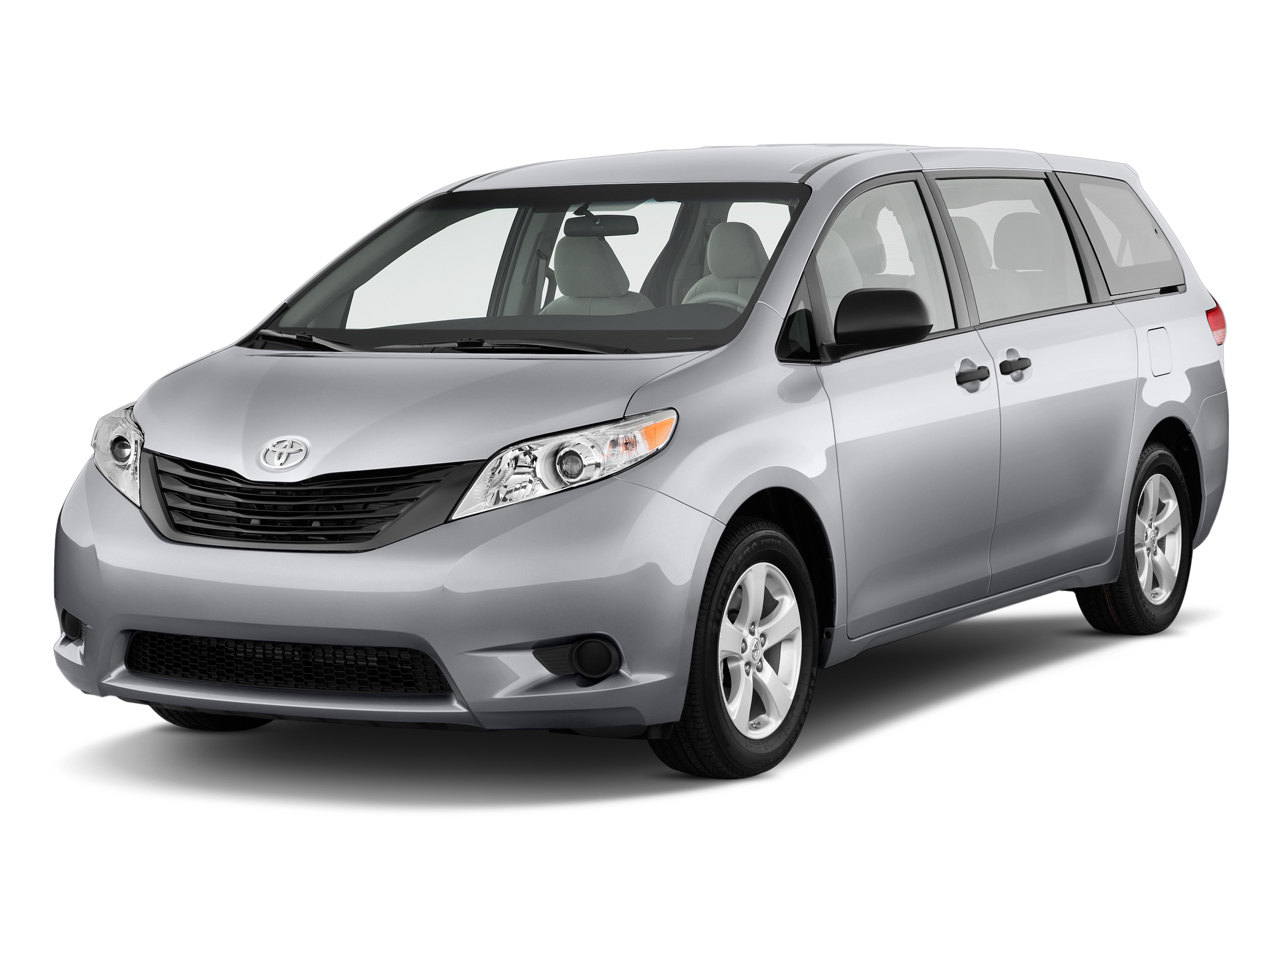 2011 Toyota Sienna Quality Review The Car Connection